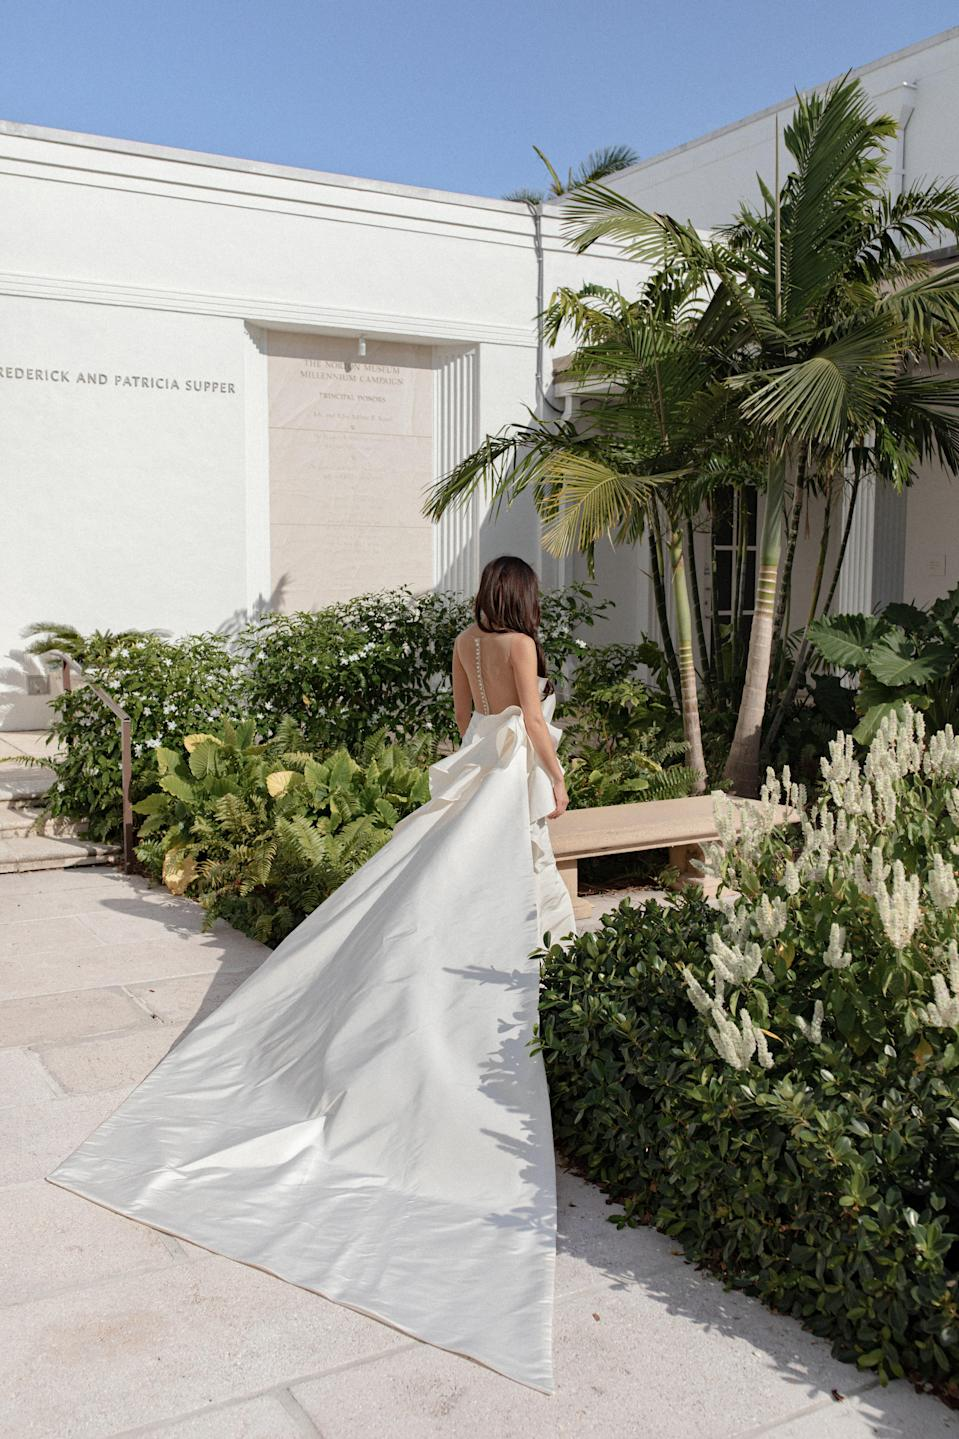 The back of my dress was 10 feet long. It had a detachable train cut on a bias and designed to match the minimalist sculptures in the garden. I loved the drama of it all.